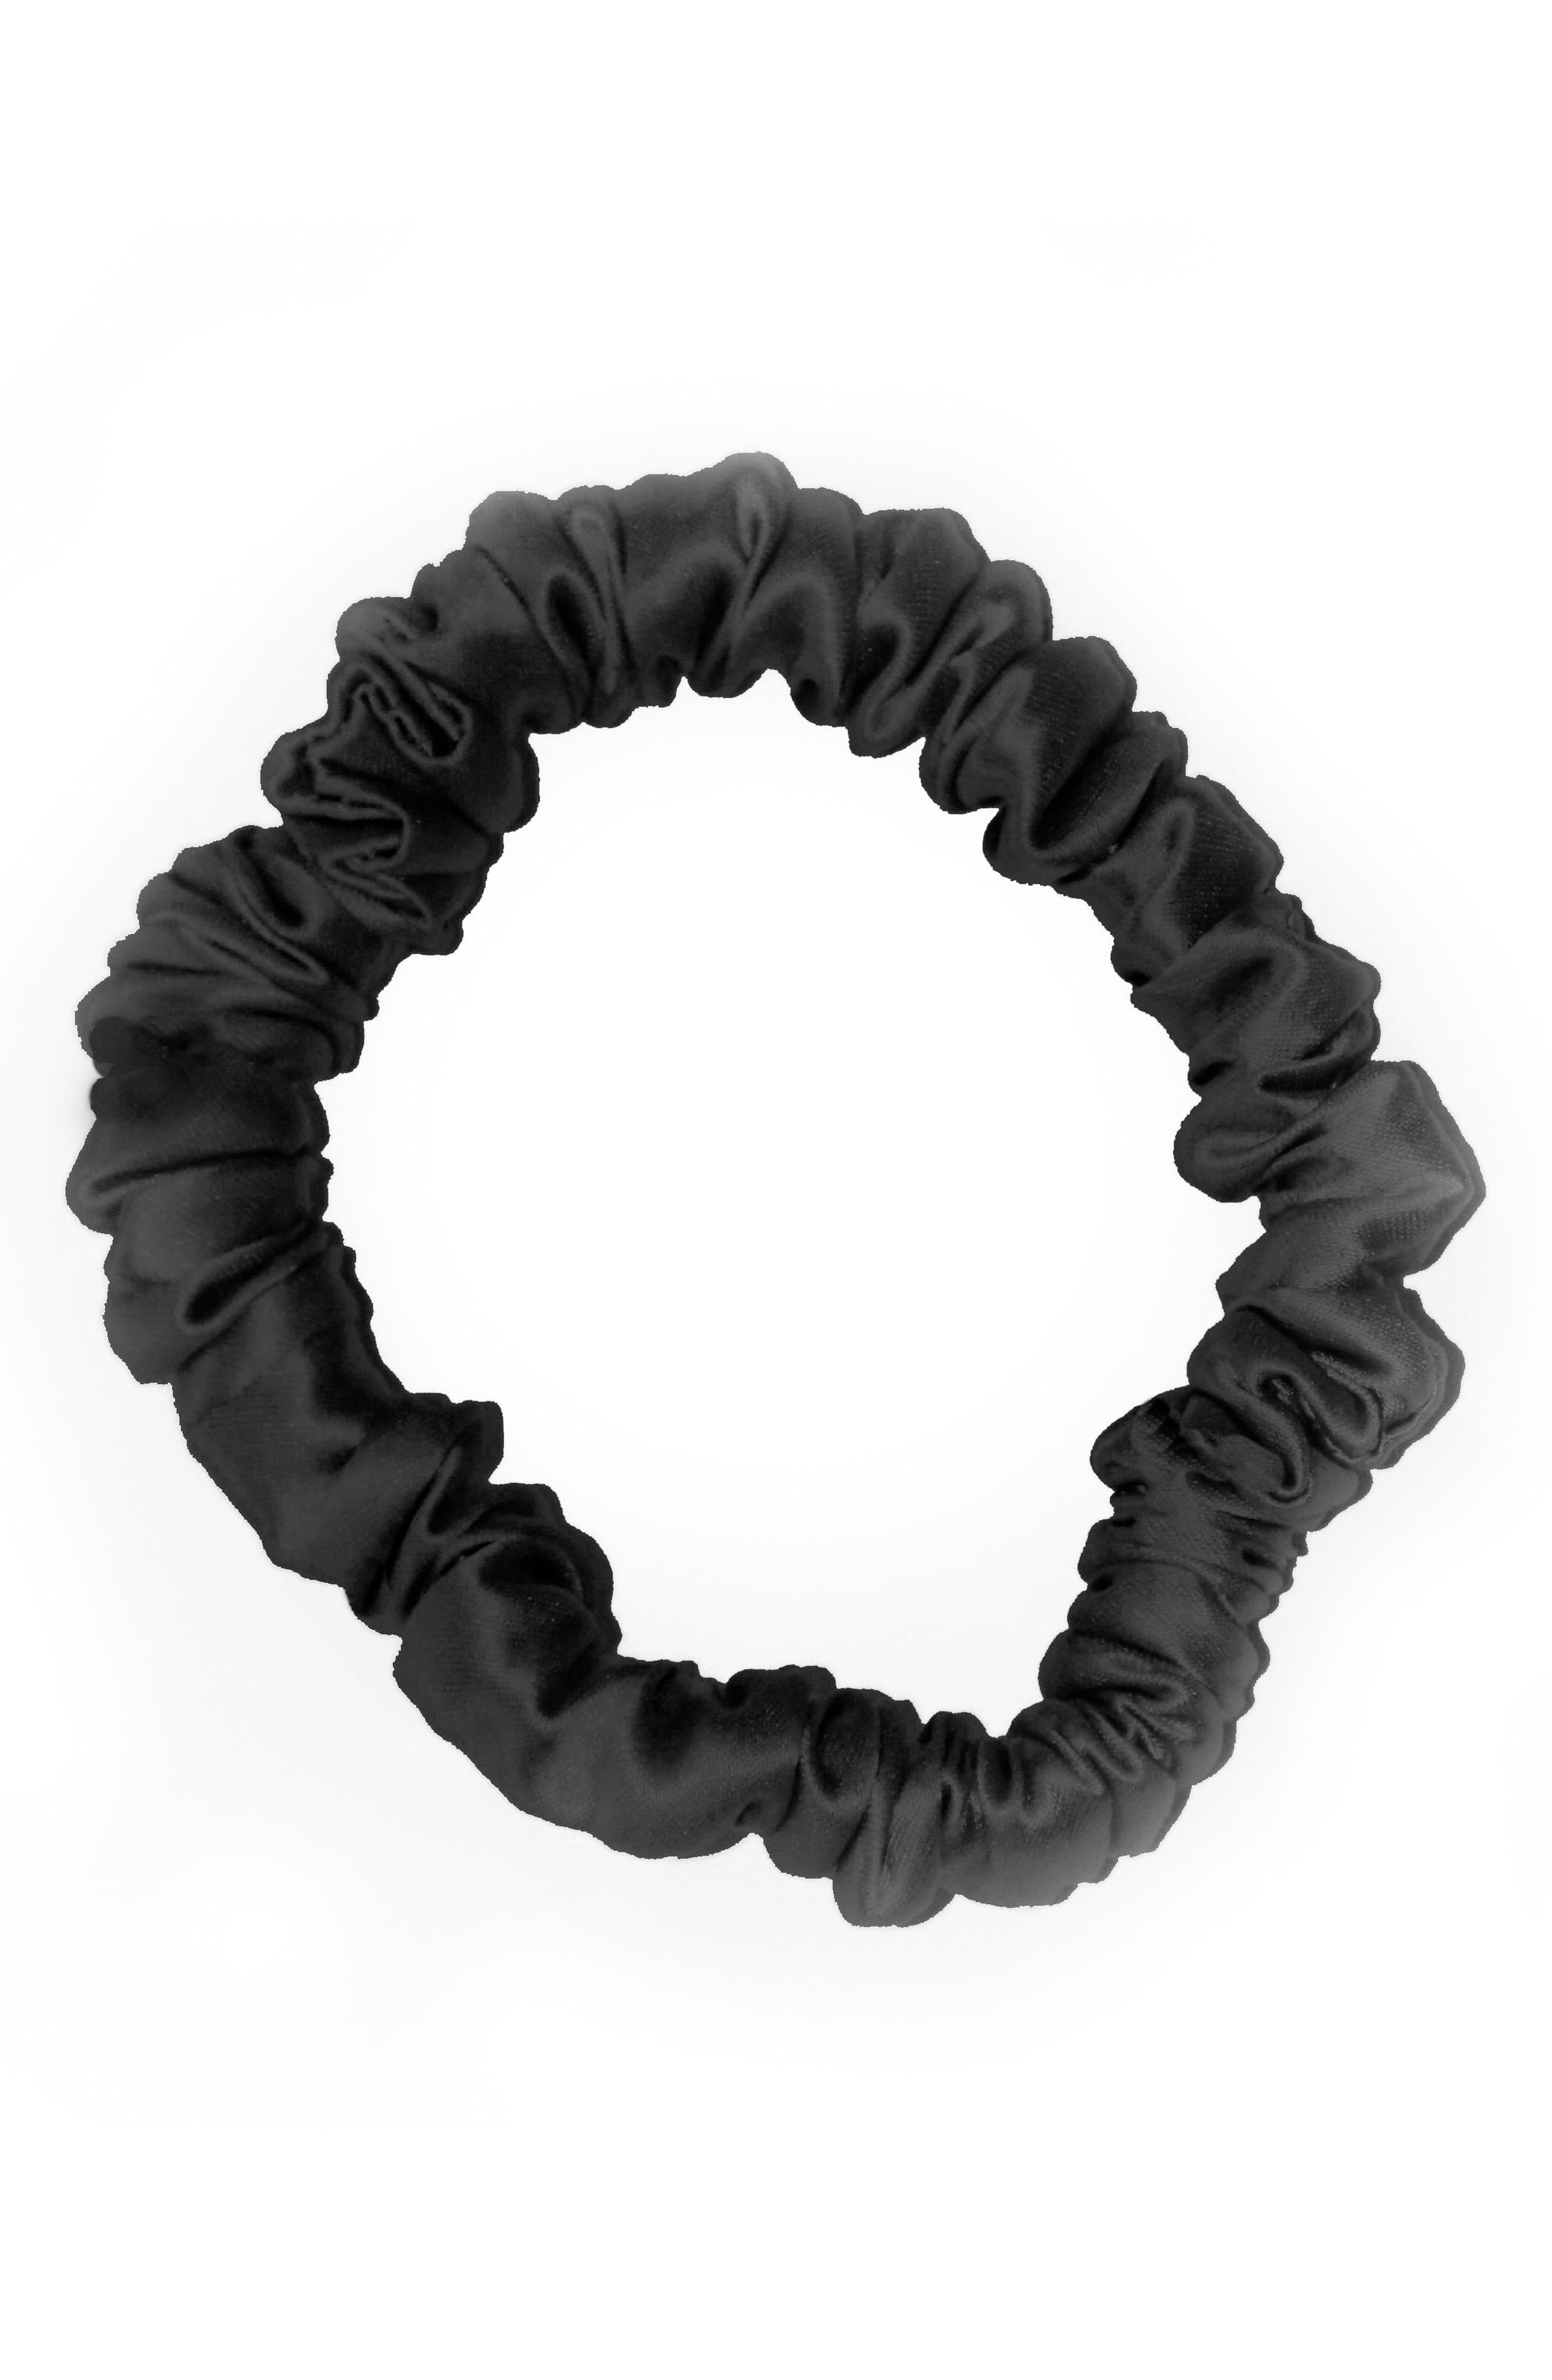 SLIP FOR BEAUTY SLEEP, slip<sup>™</sup> for beauty sleep 6-Pack Slipsilk<sup>™</sup> Skinny Hair Ties, Alternate thumbnail 3, color, BLACK